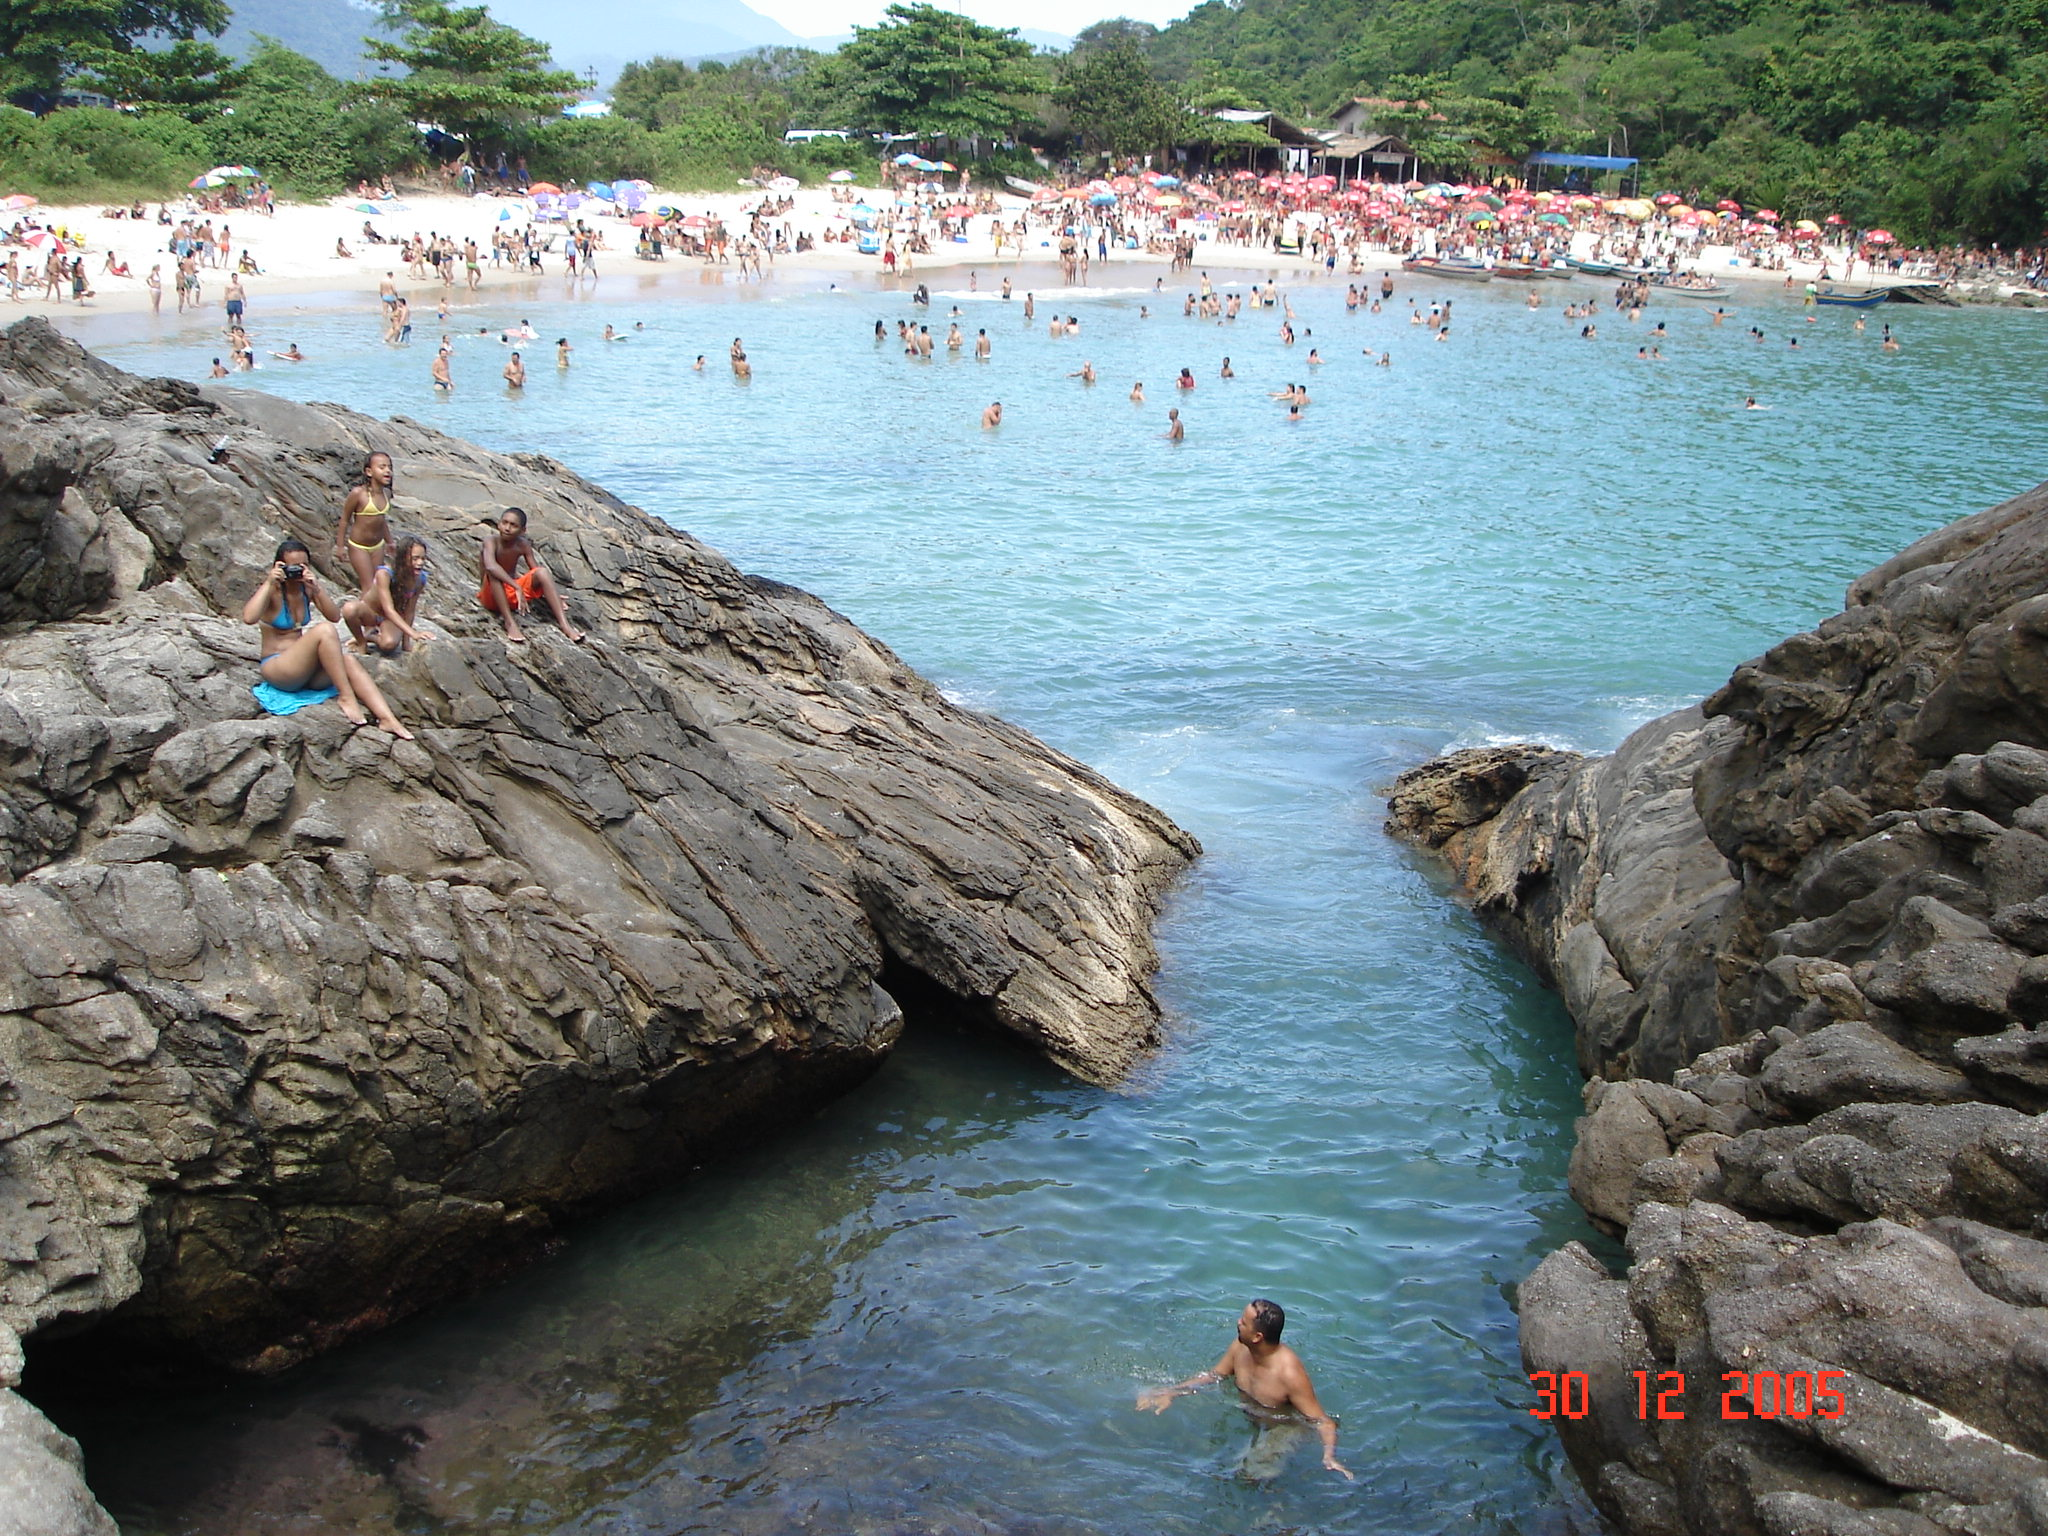 my experience on two beaches in River number two beach: my experience at the beach - see 114 traveler reviews, 108 candid photos, and great deals for freetown, sierra leone, at tripadvisor.